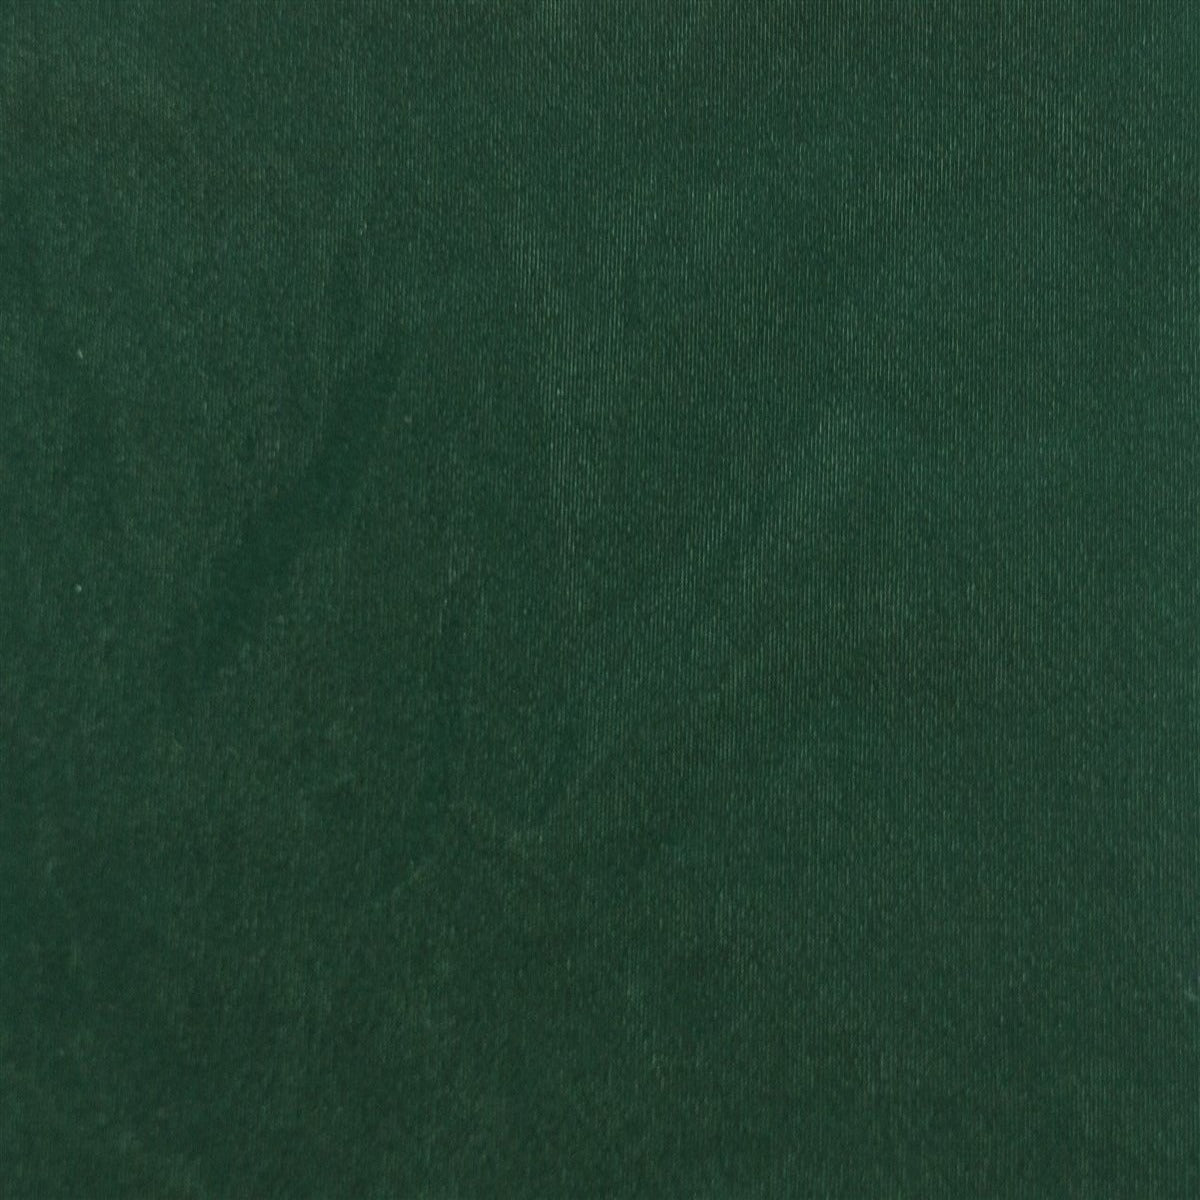 Hunter Green Triple Velvet Clothing Drapery Fabric - Fashion Fabrics Los Angeles